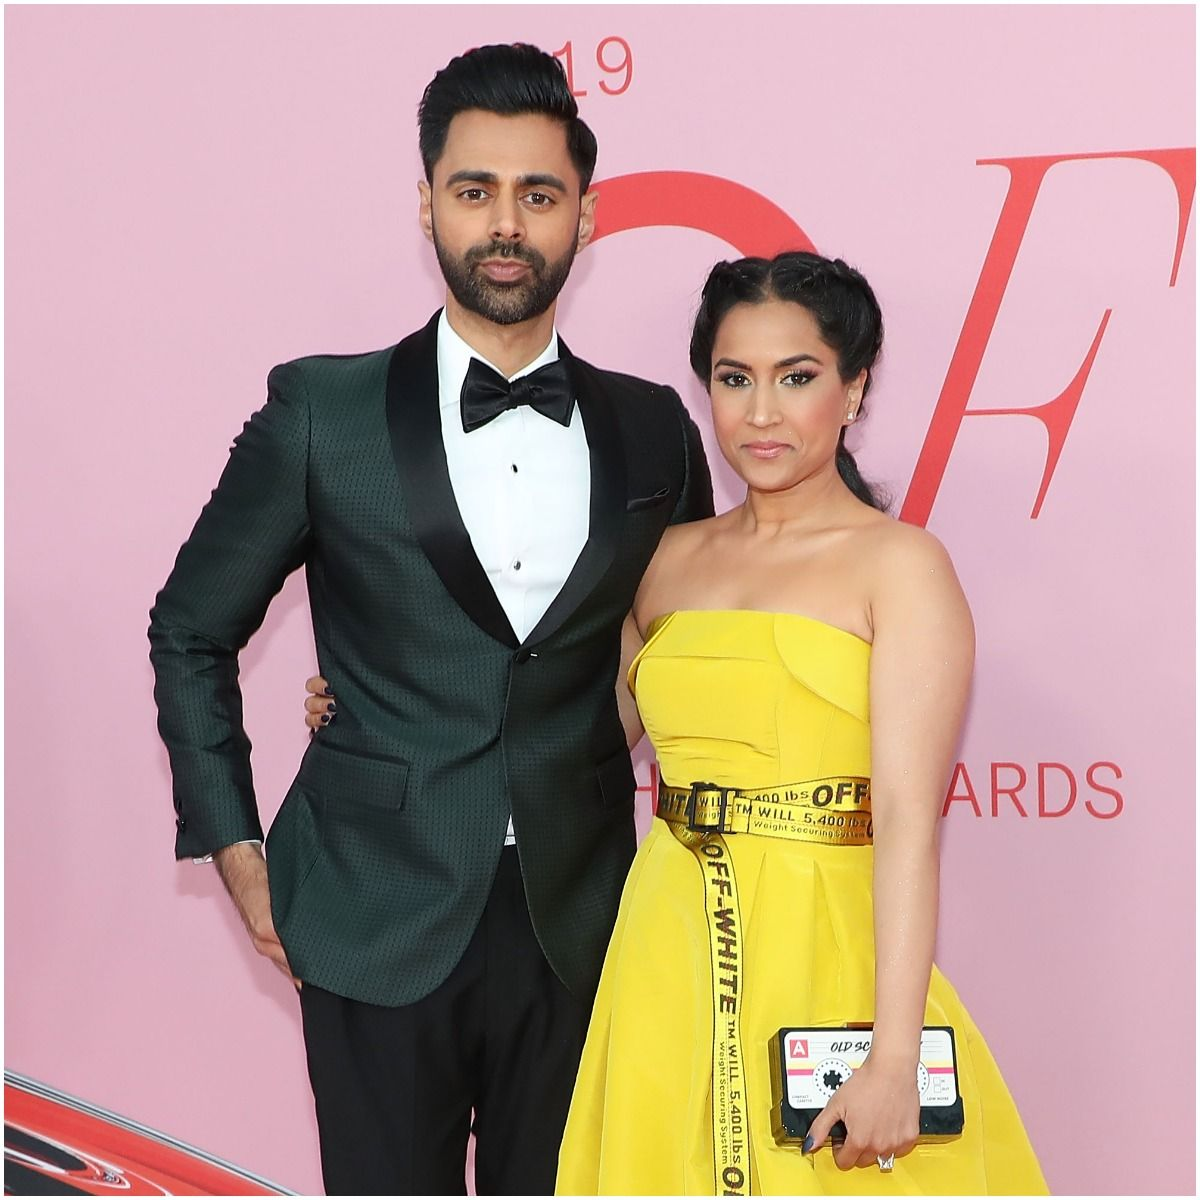 Hasan Minhaj with his wife Beena Patel